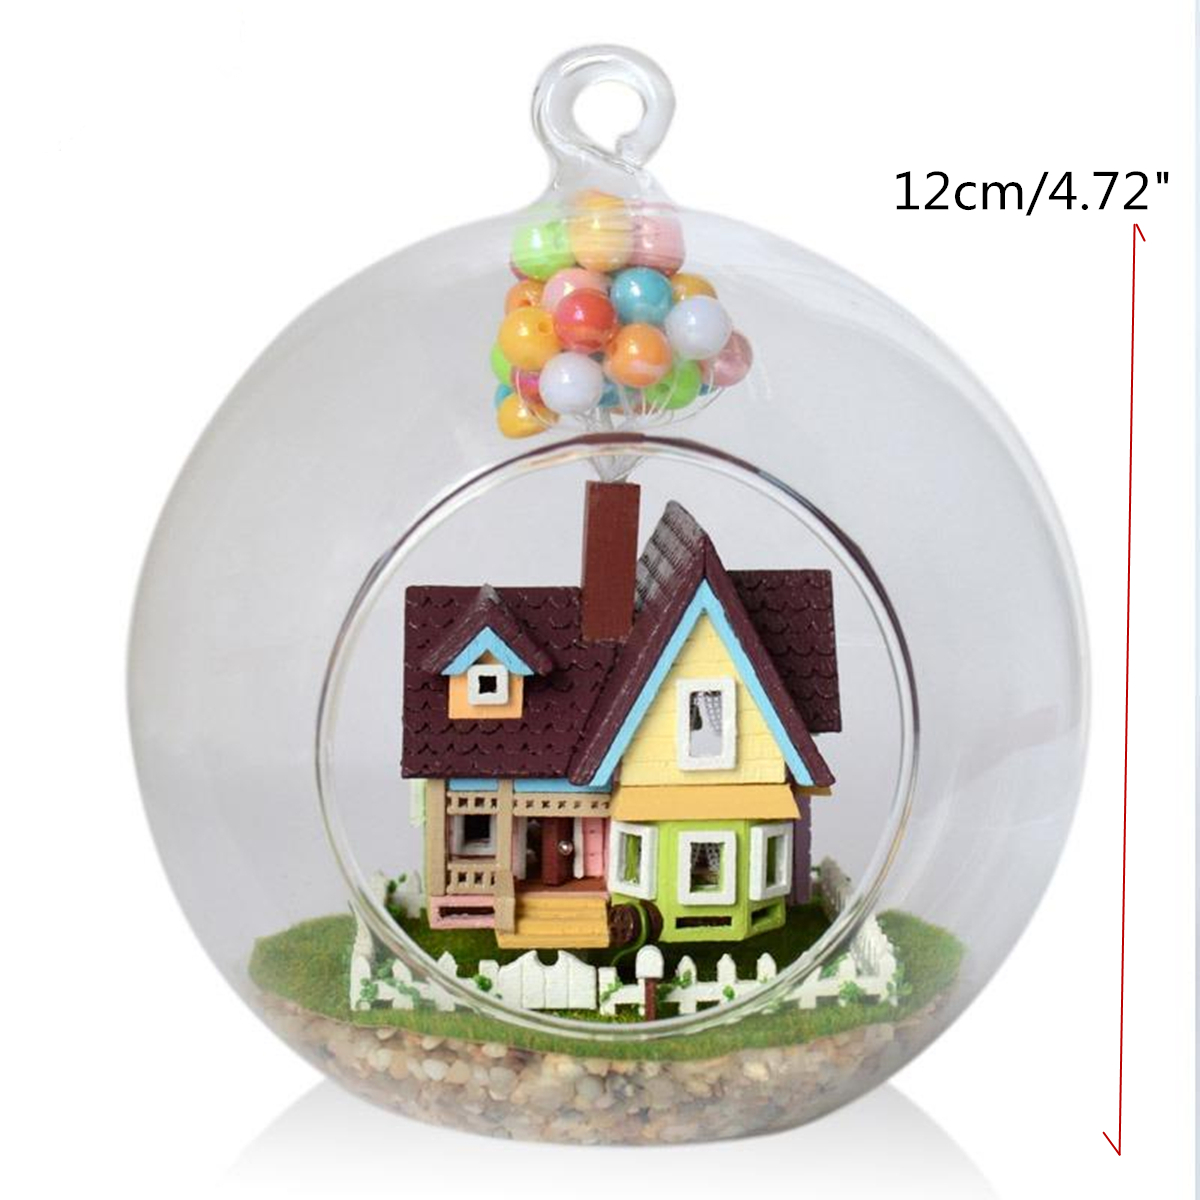 3D DIY Miniature Glass Ball Dollhouse LED Sound Control Light Doll House Creative Christmas Gift